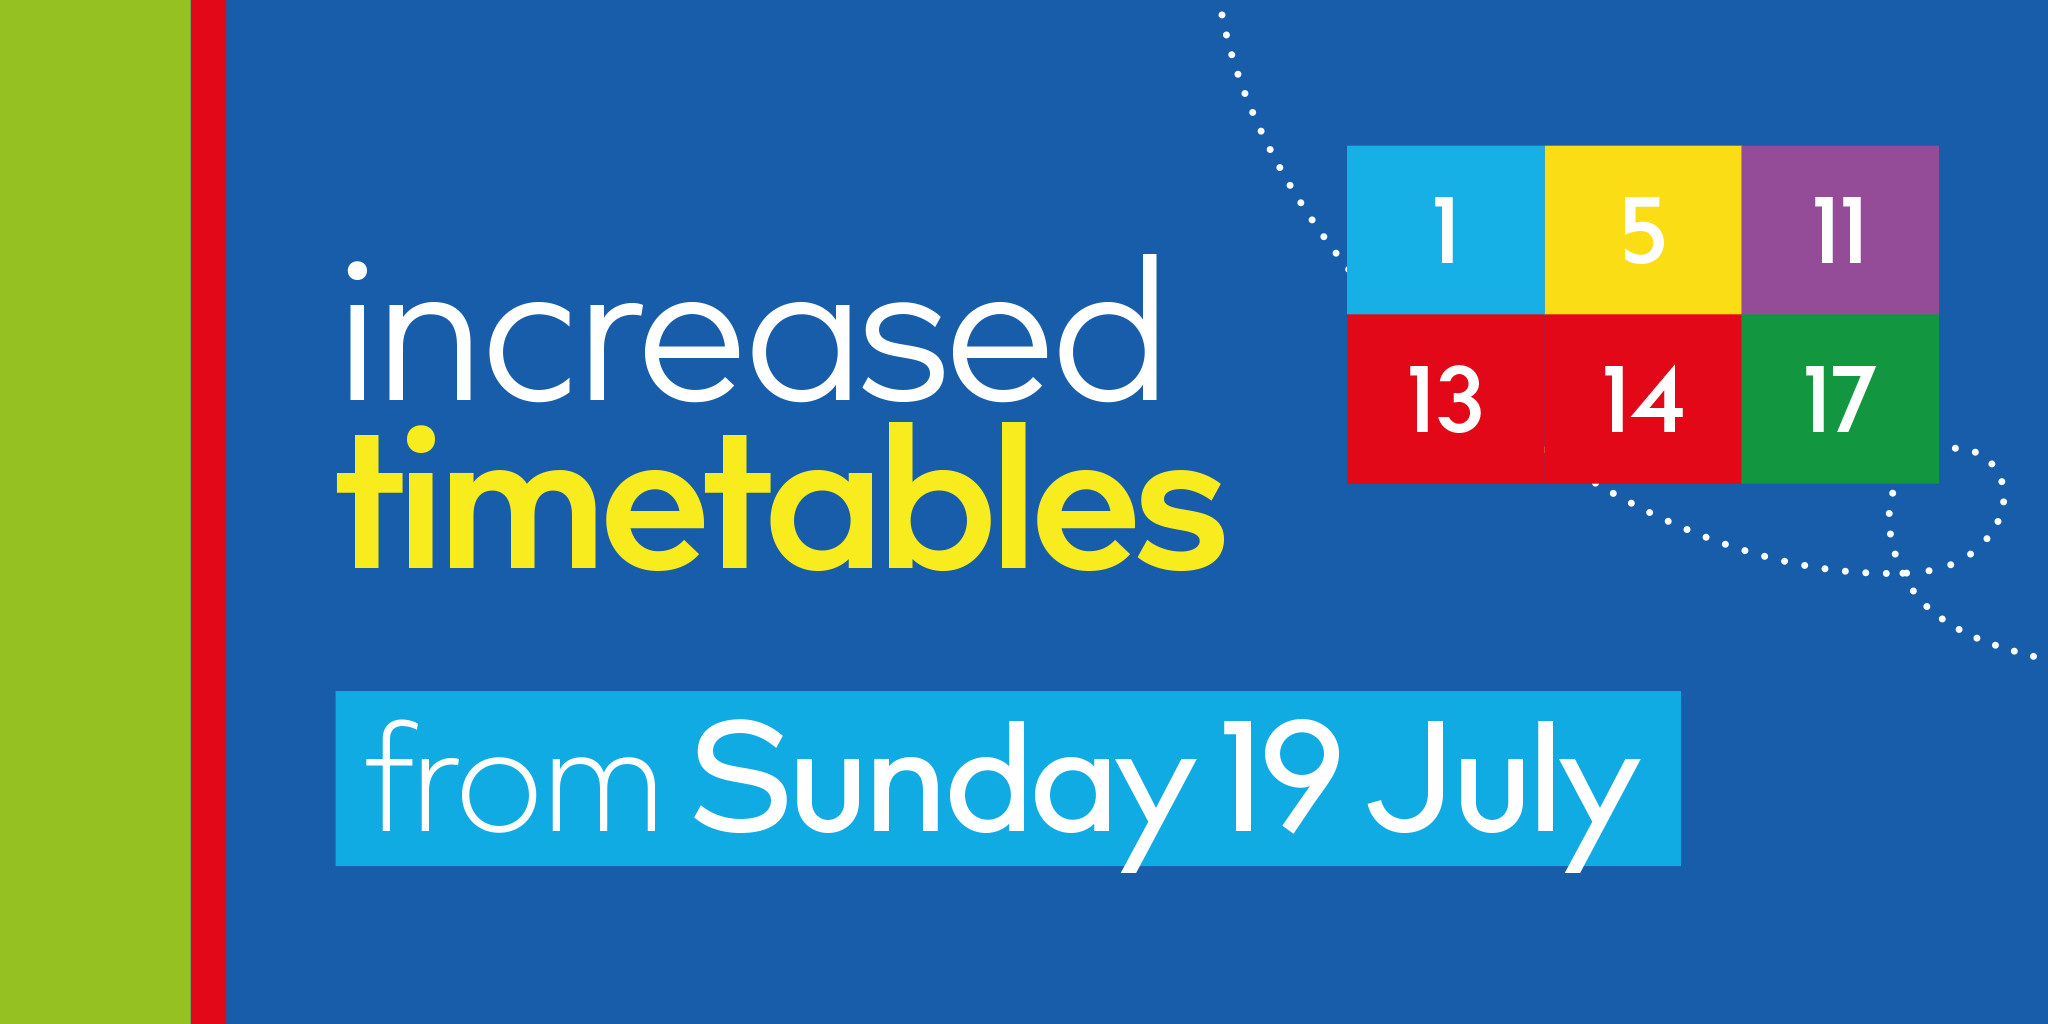 Image reading 'Increased timetables on routes 1, 5, 11, 13/14 and 17 from Sunday 19th July'